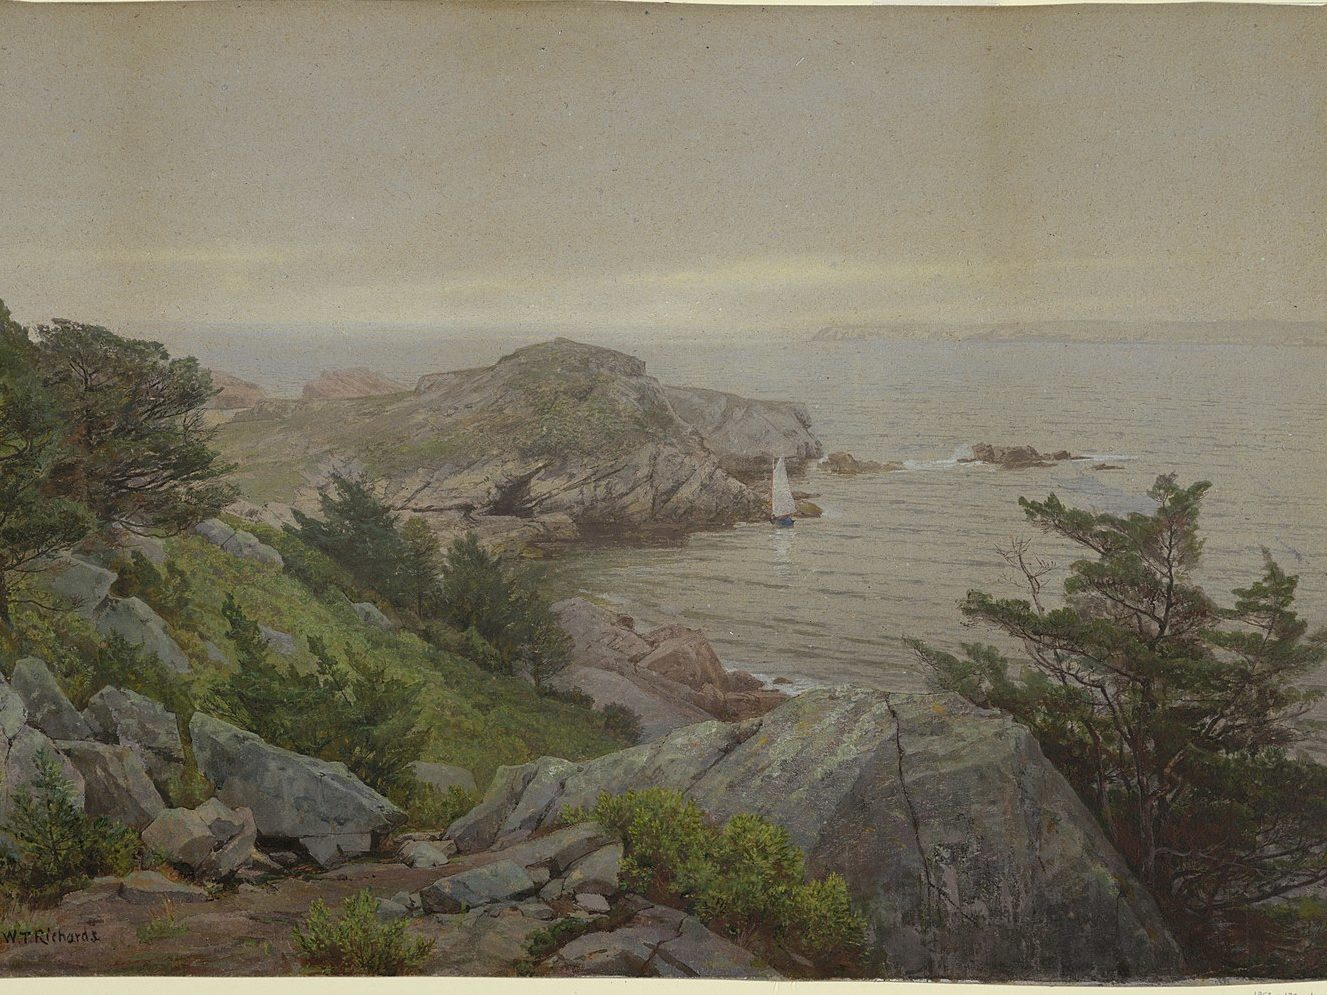 Mackerel Cove, Jamestown RI, c 1877